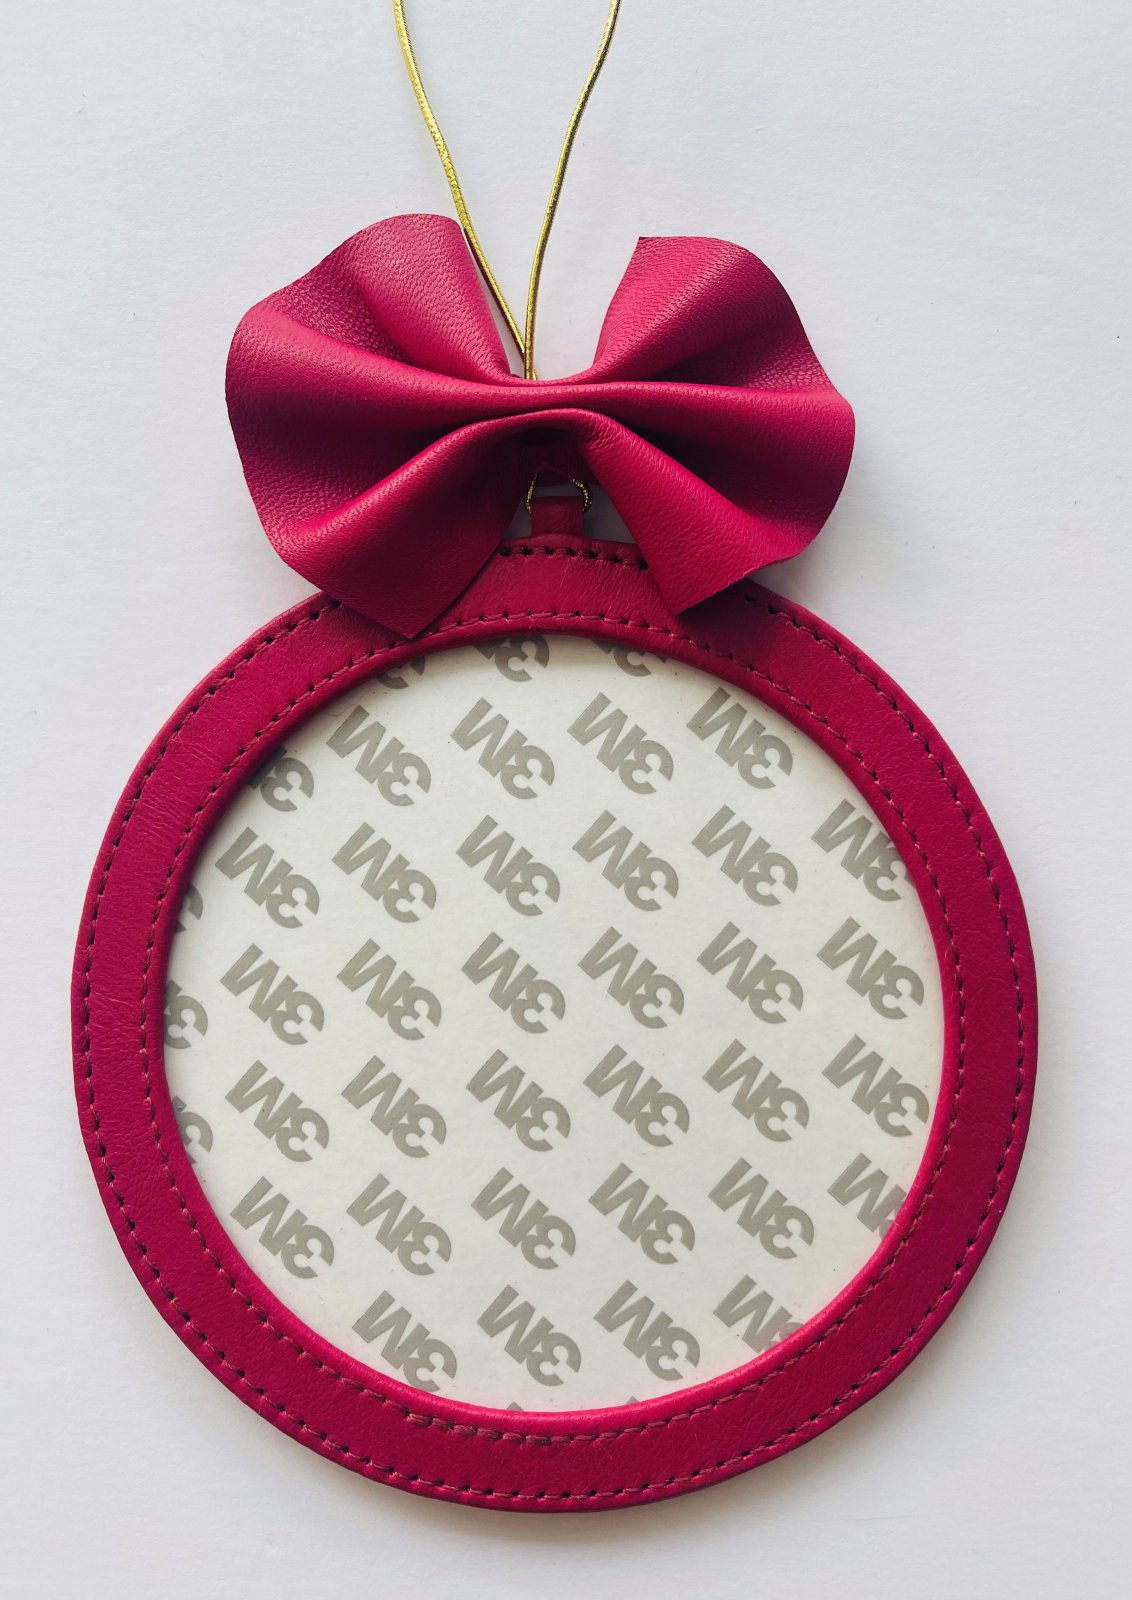 5 Holiday Round Ornament - Hot Pink